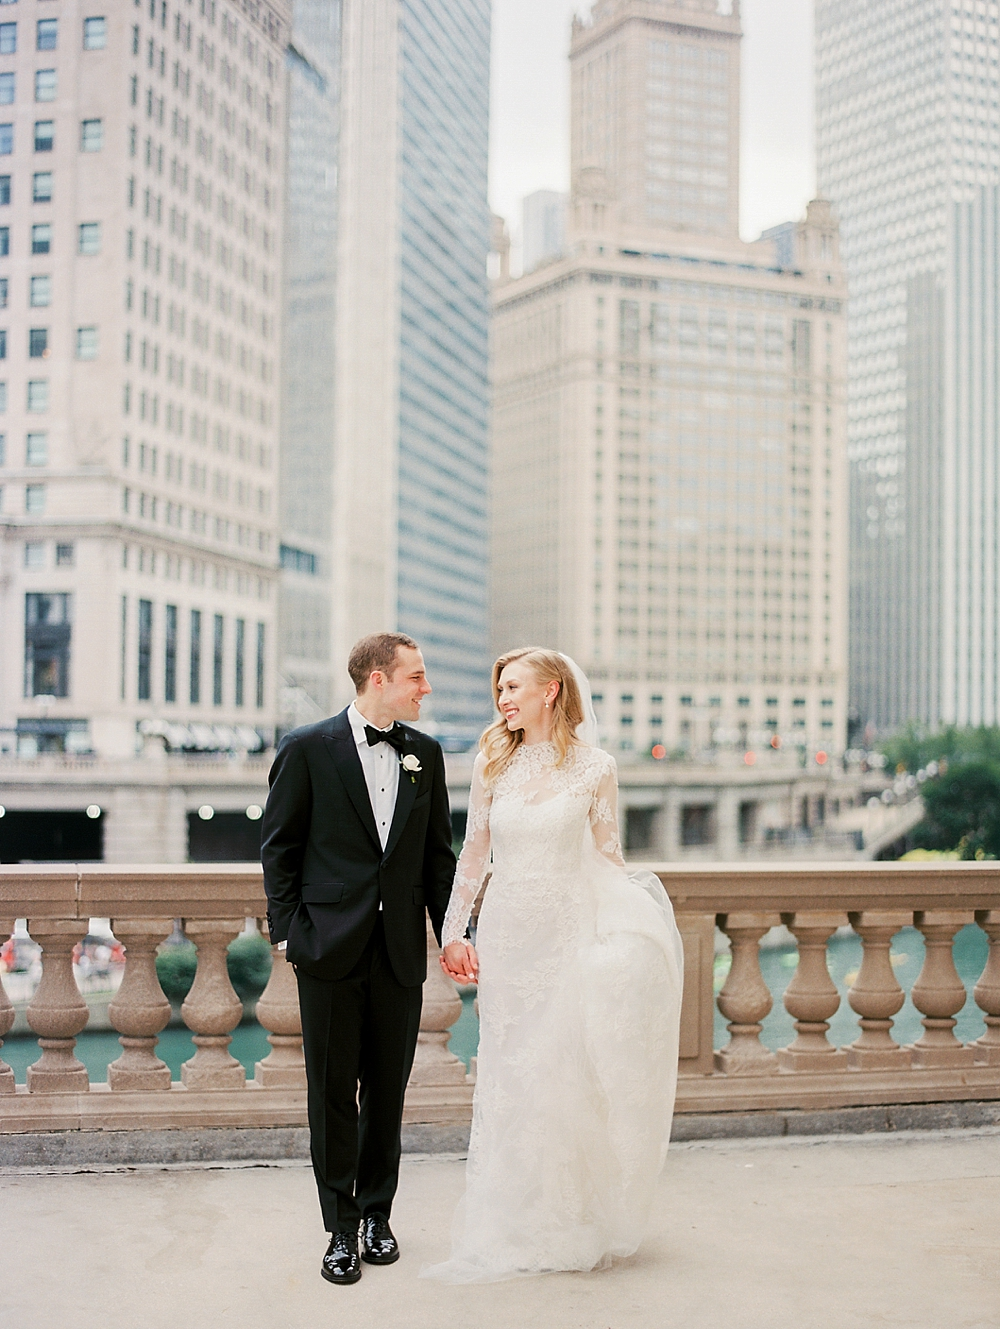 kristin-la-voie-photography-chicago-wedding-photographer-214